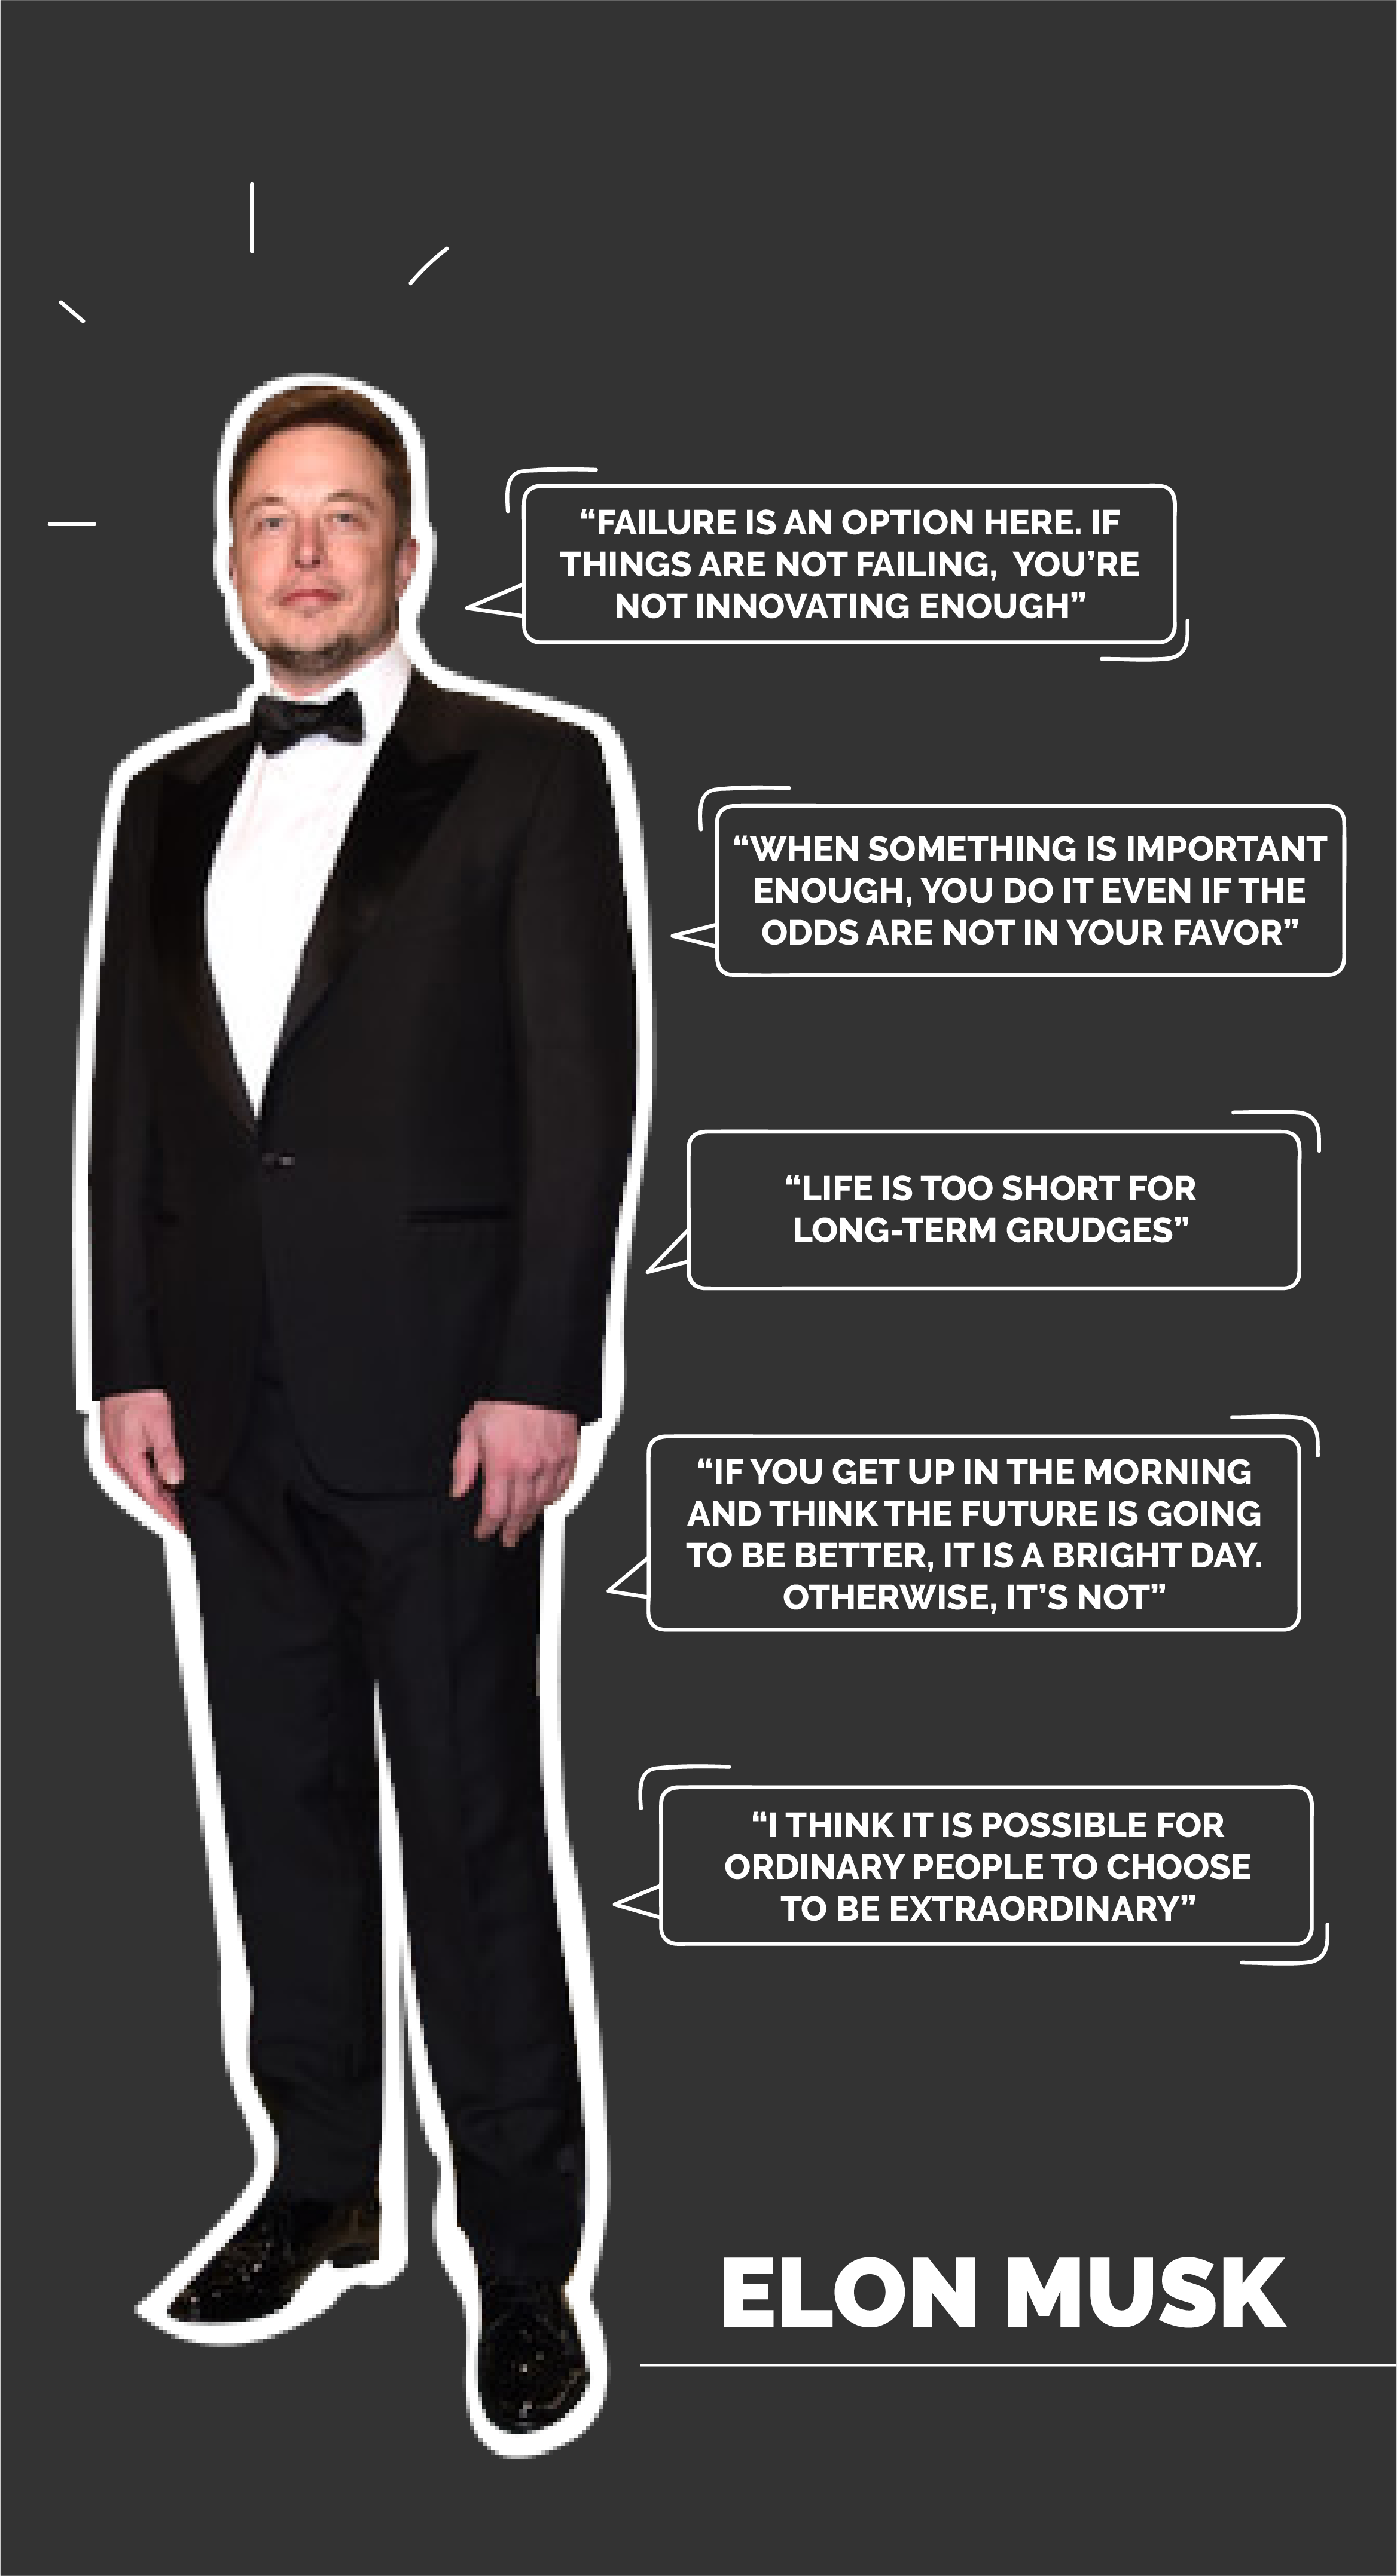 10 interesting things about Elon Musk that you probably didn't know!